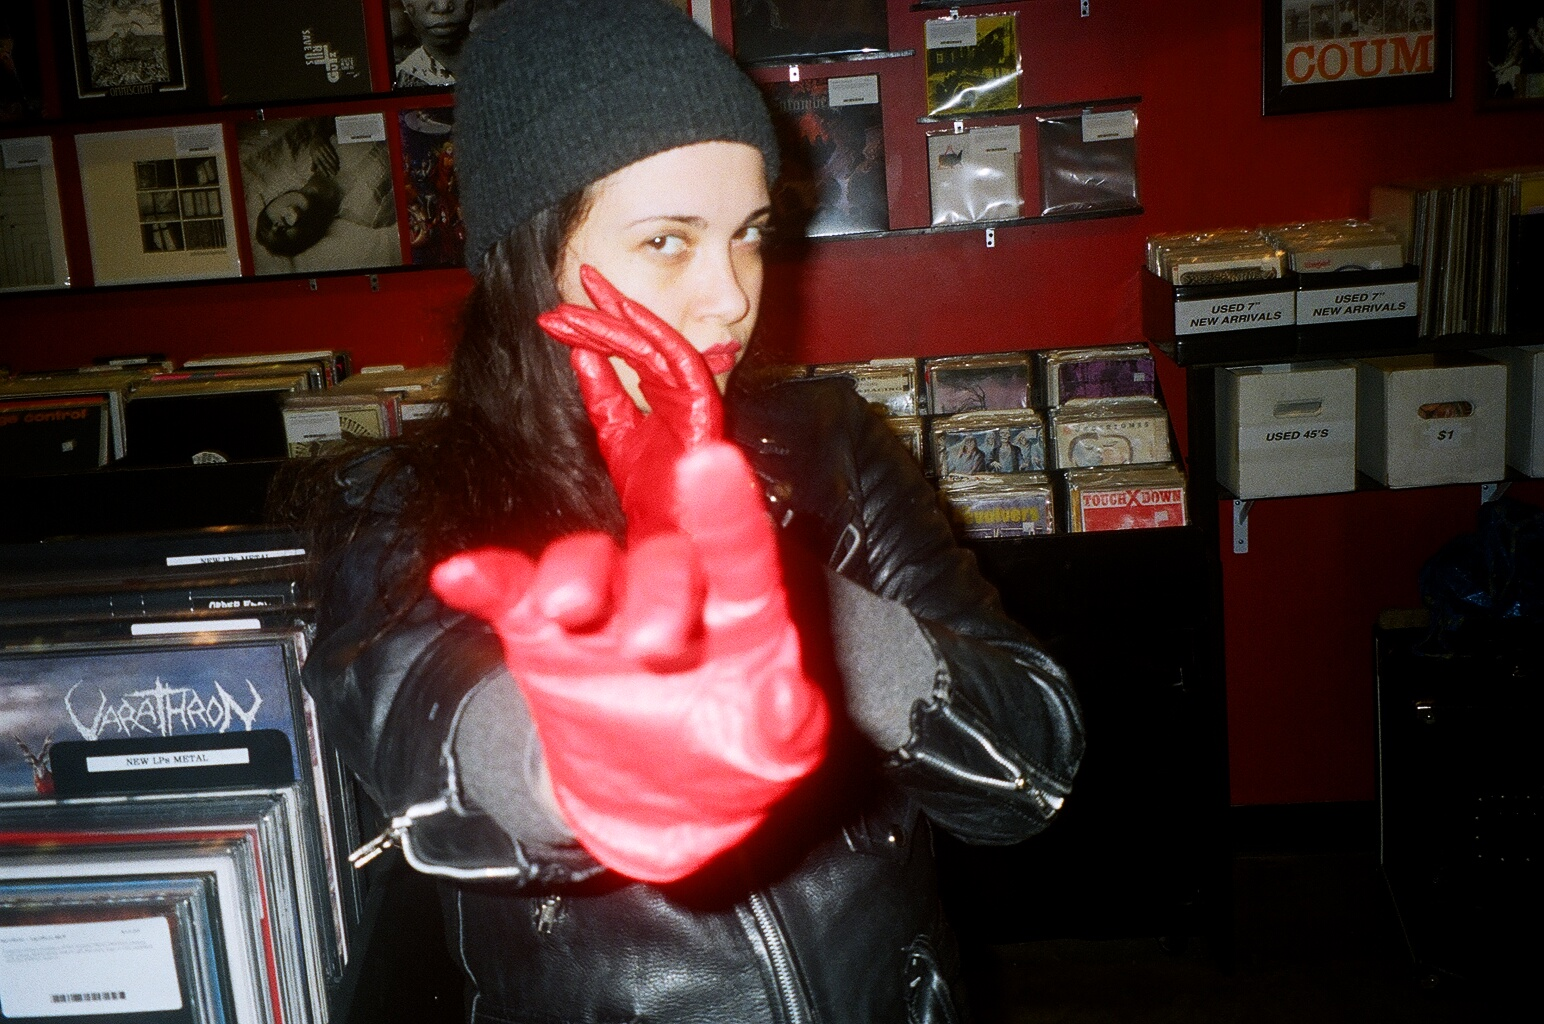 Chelsea Marks at Heaven Street Records.